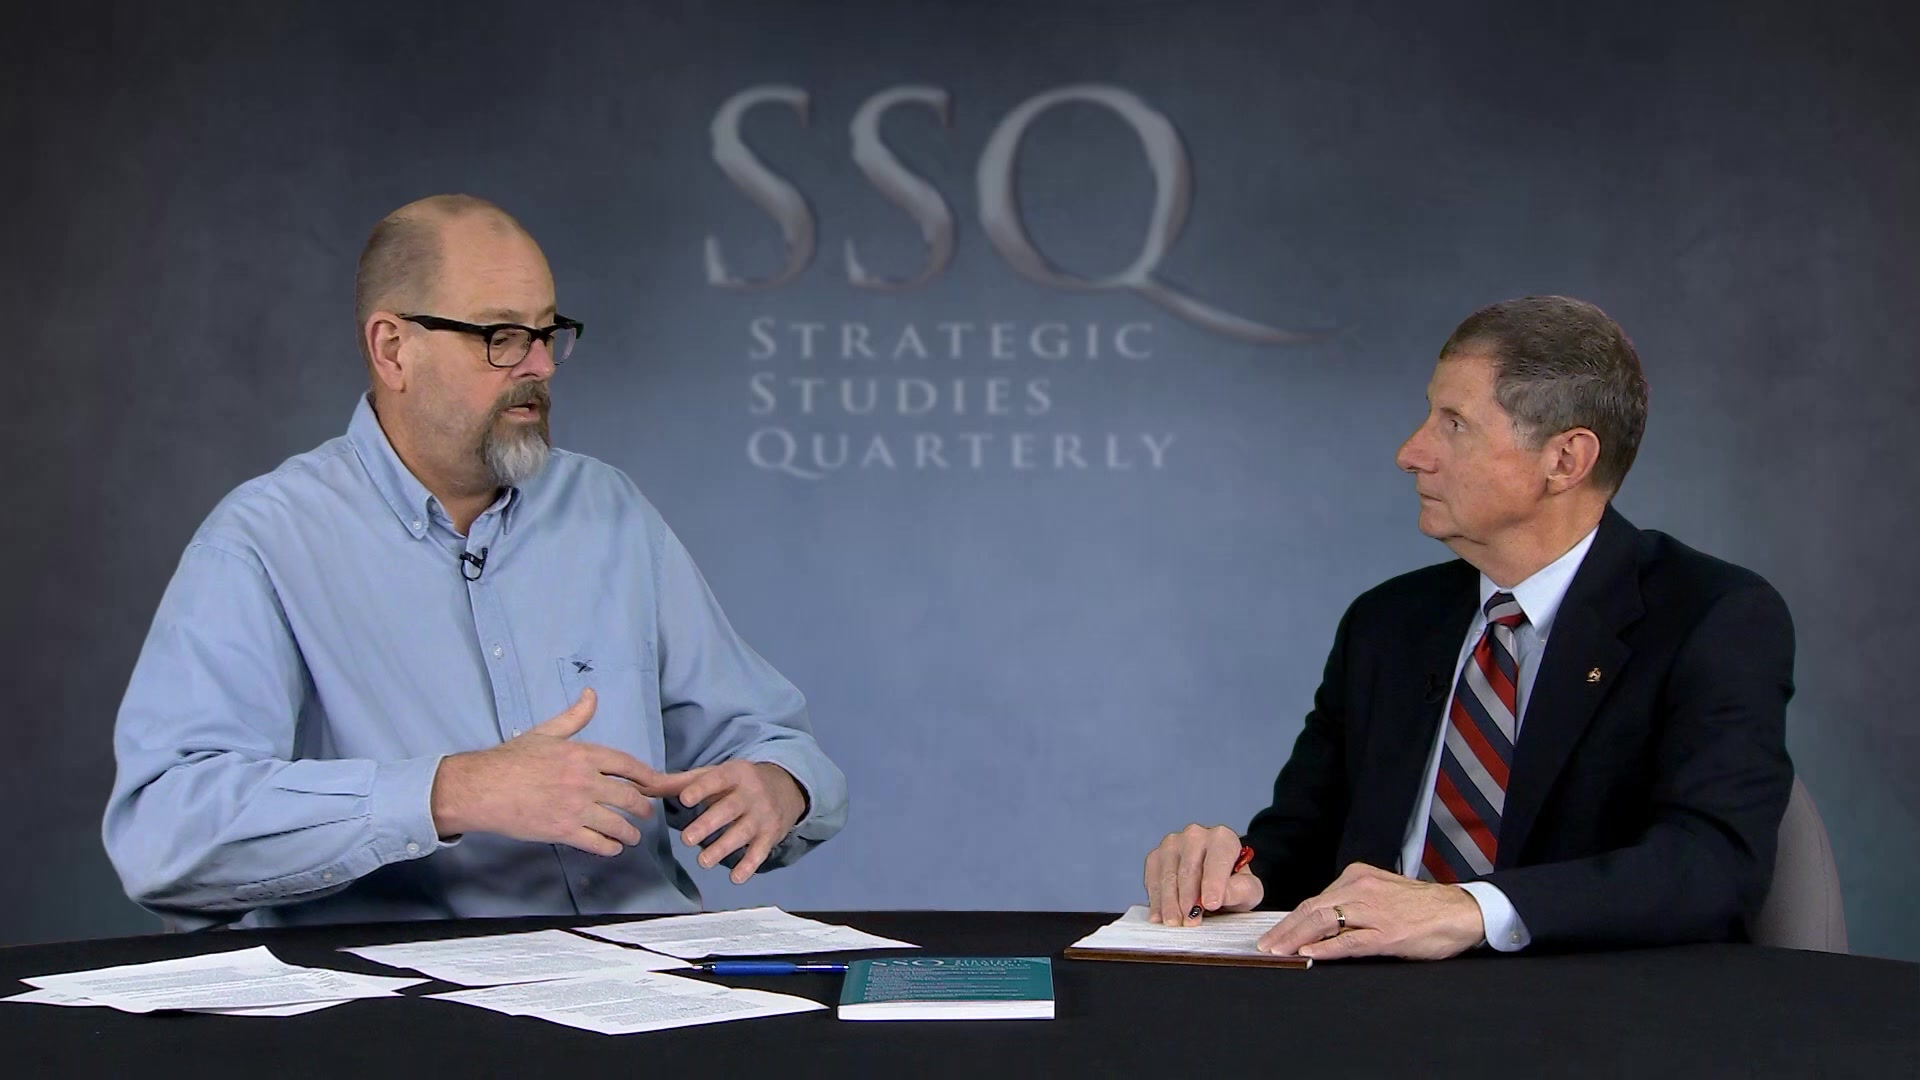 """Dr. Everett Dolman presents his views on the challenges and opportunities offered by a proposed U.S. Space Force"" to Strategic Studies Quarterly, SSQ."